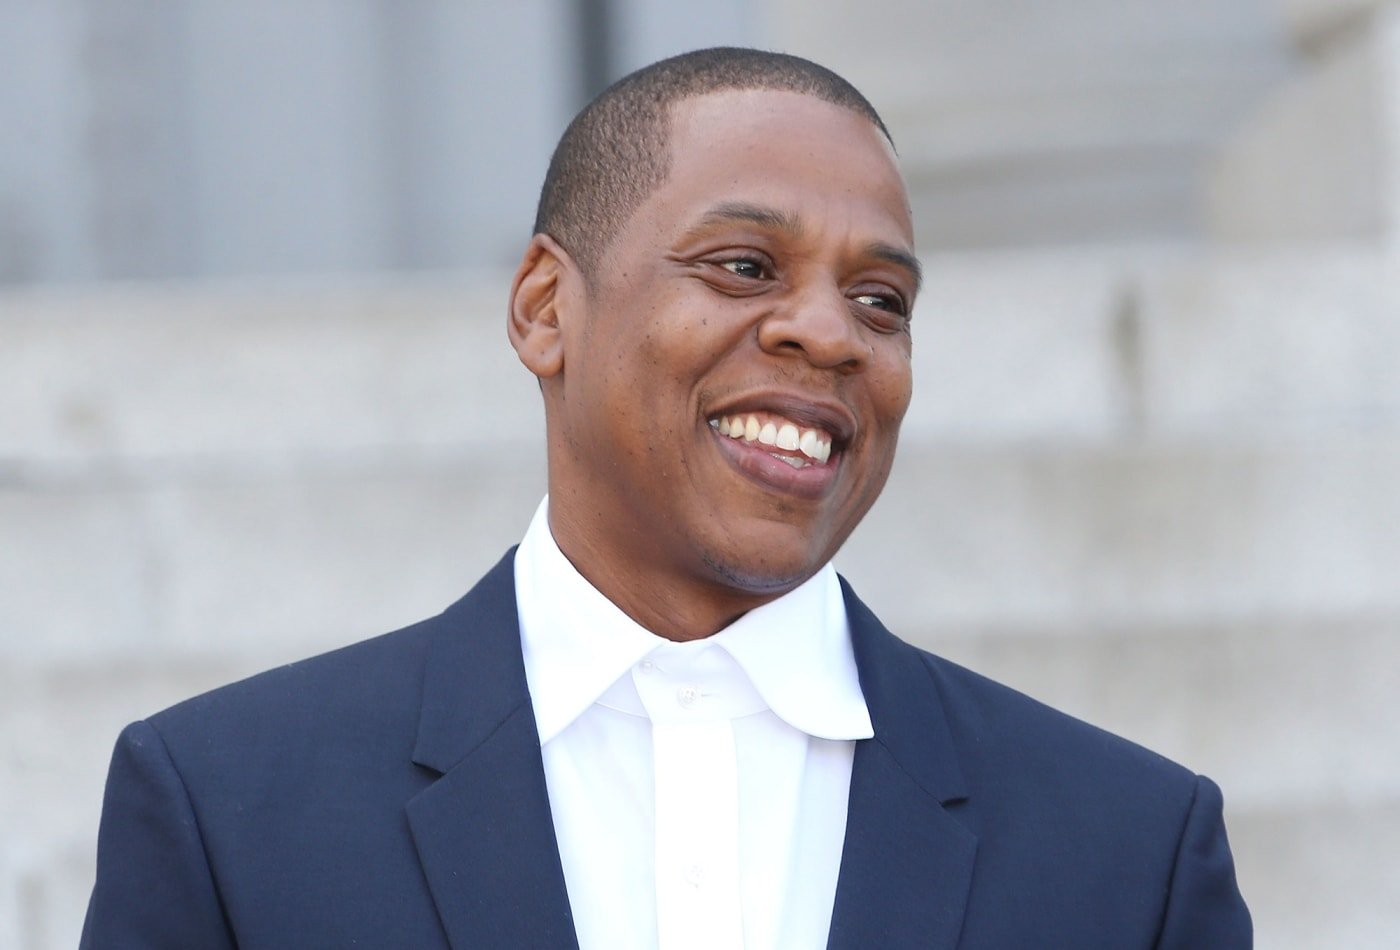 https://www.cnbc.com/2020/07/24/3-entrepreneurs-on-the-impact-of-jay-zs-black-business-ads.html